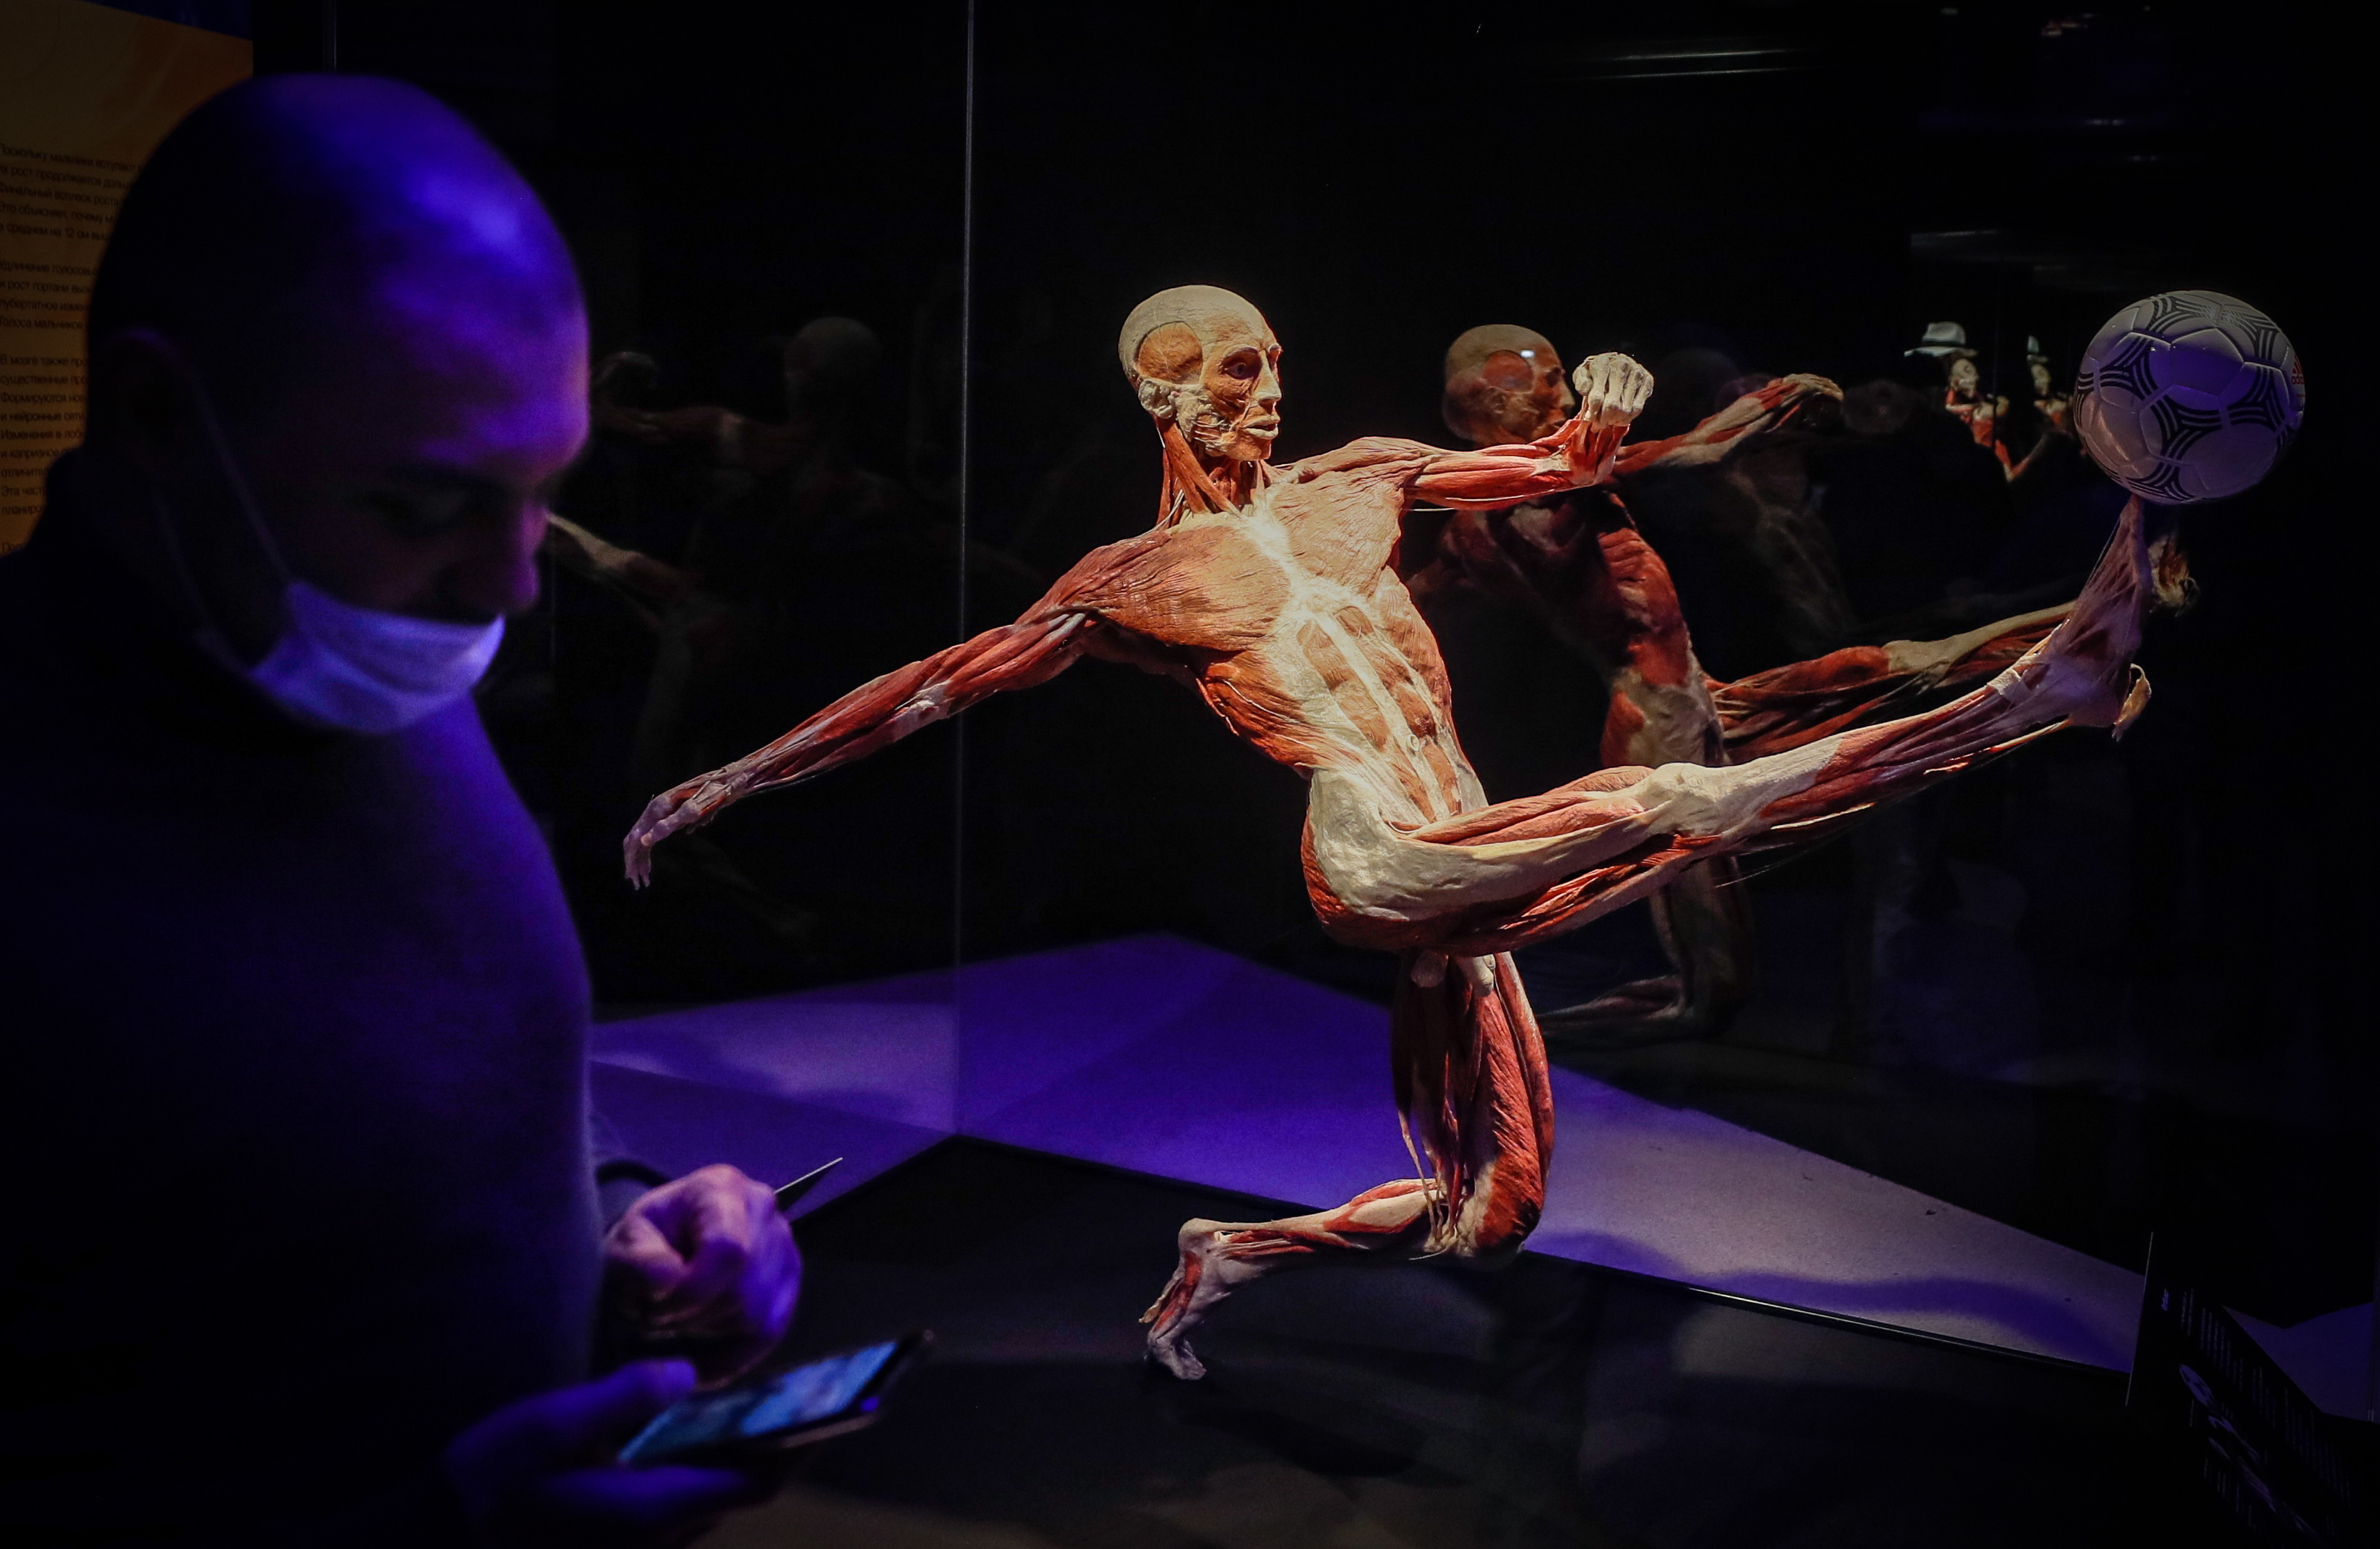 The exhibition Body Worlds in Moscow